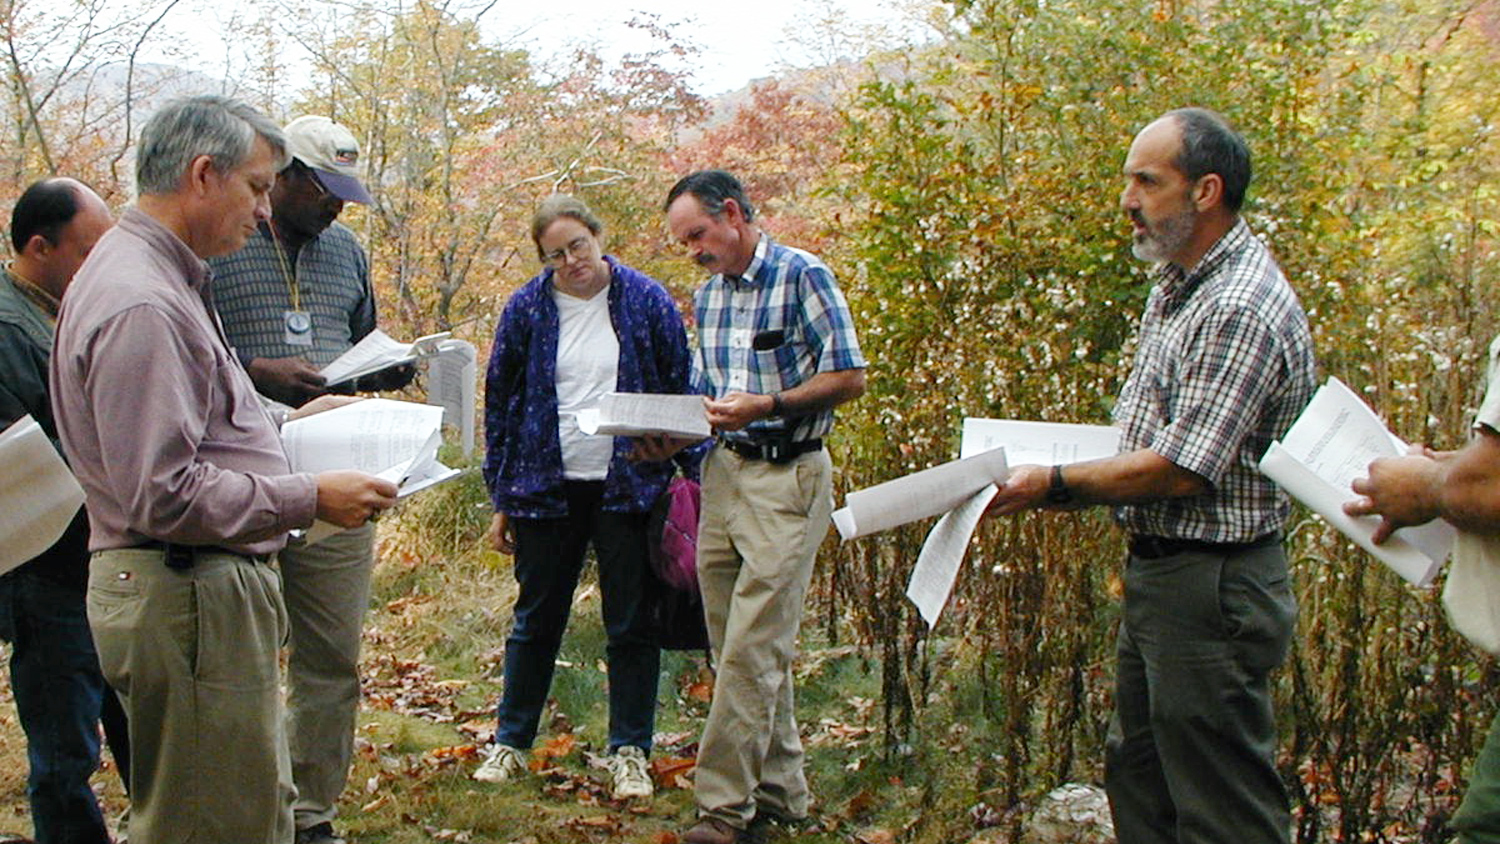 extension forestry in the field - Extension and Outreach - College of Natural Resources at NCState University